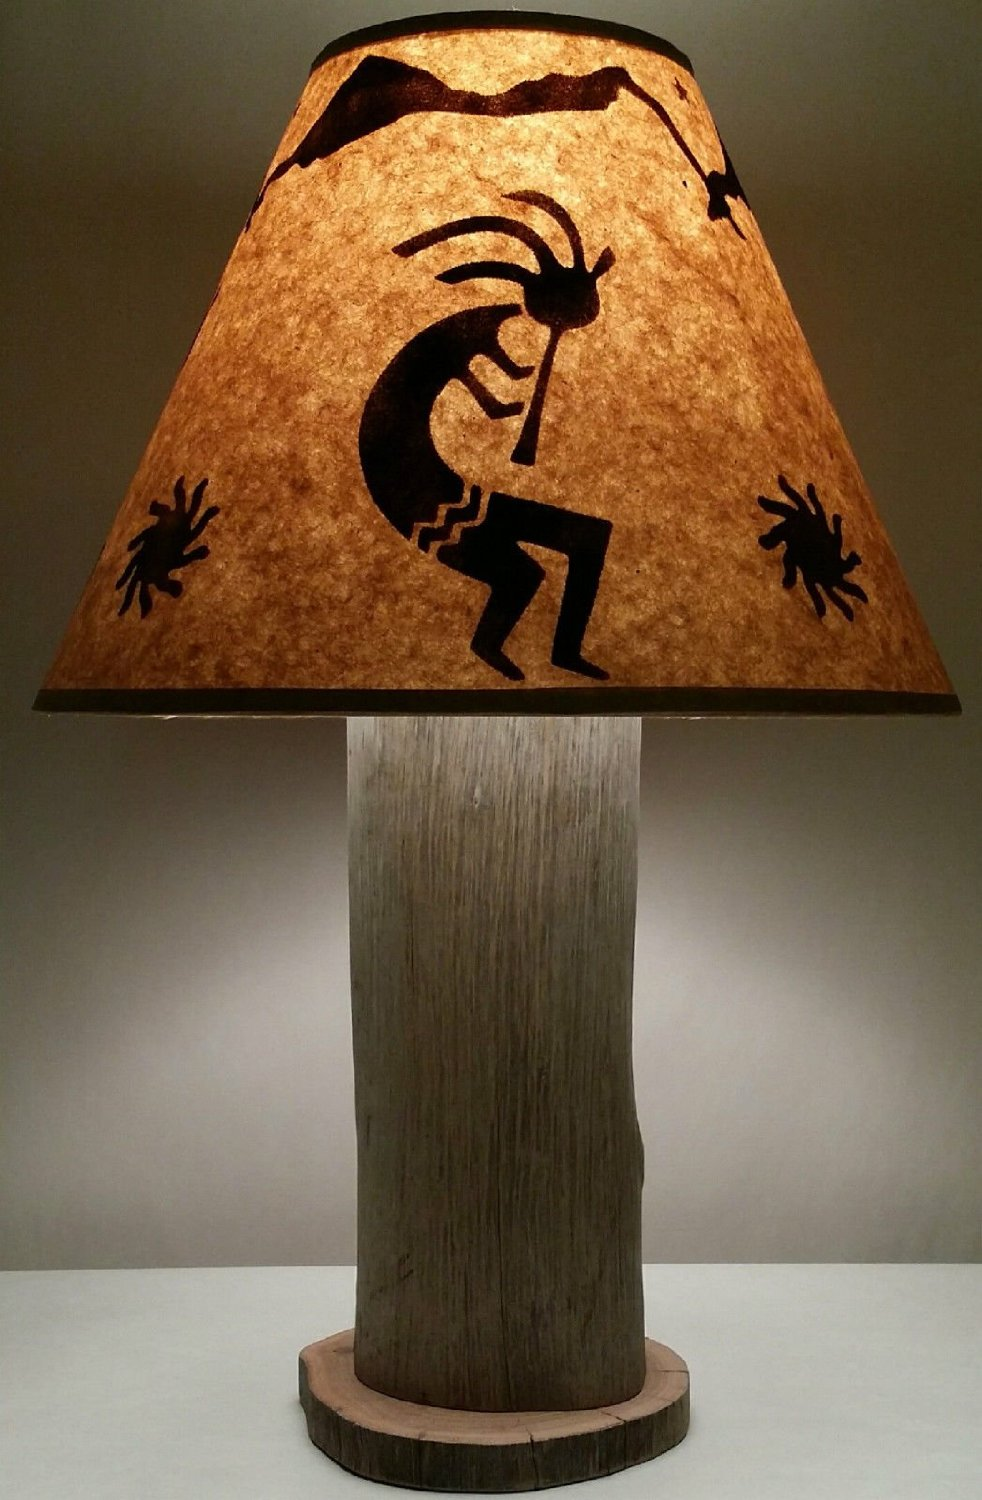 Southwestern Native American Lamps: Lighting from Earth & Sky